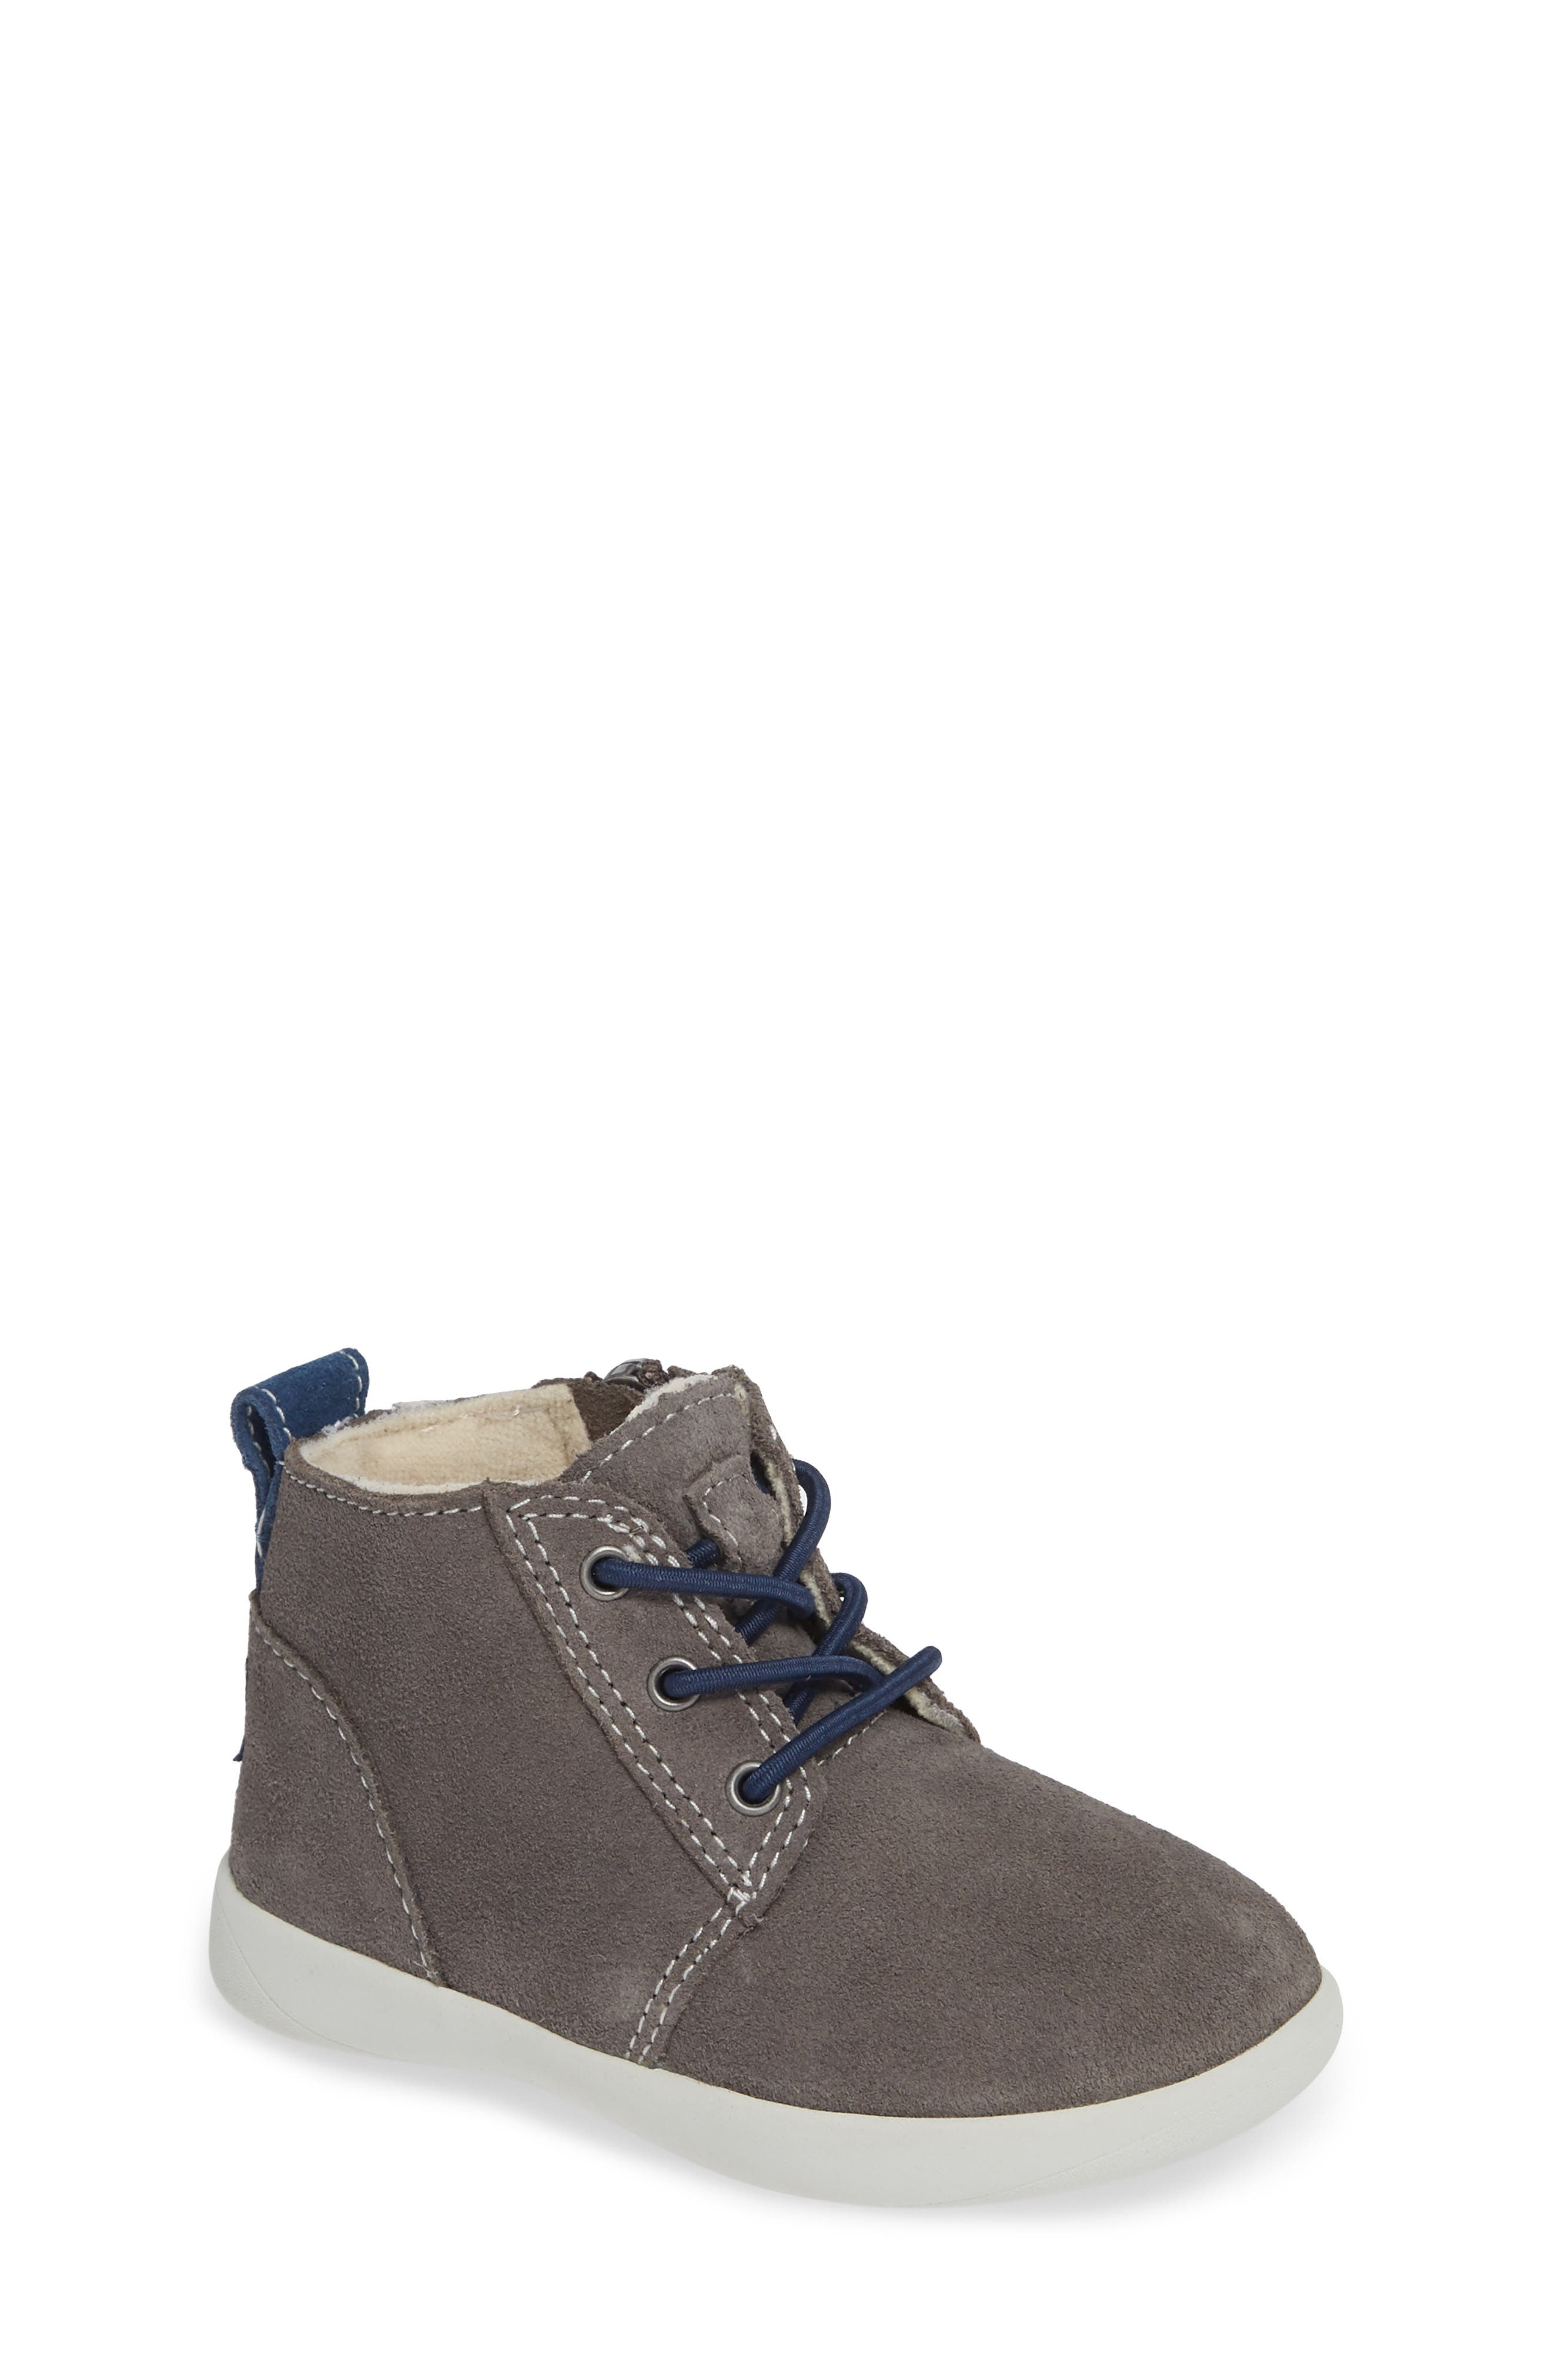 Kristjan Chukka Bootie Sneaker,                         Main,                         color, Charcoal Grey